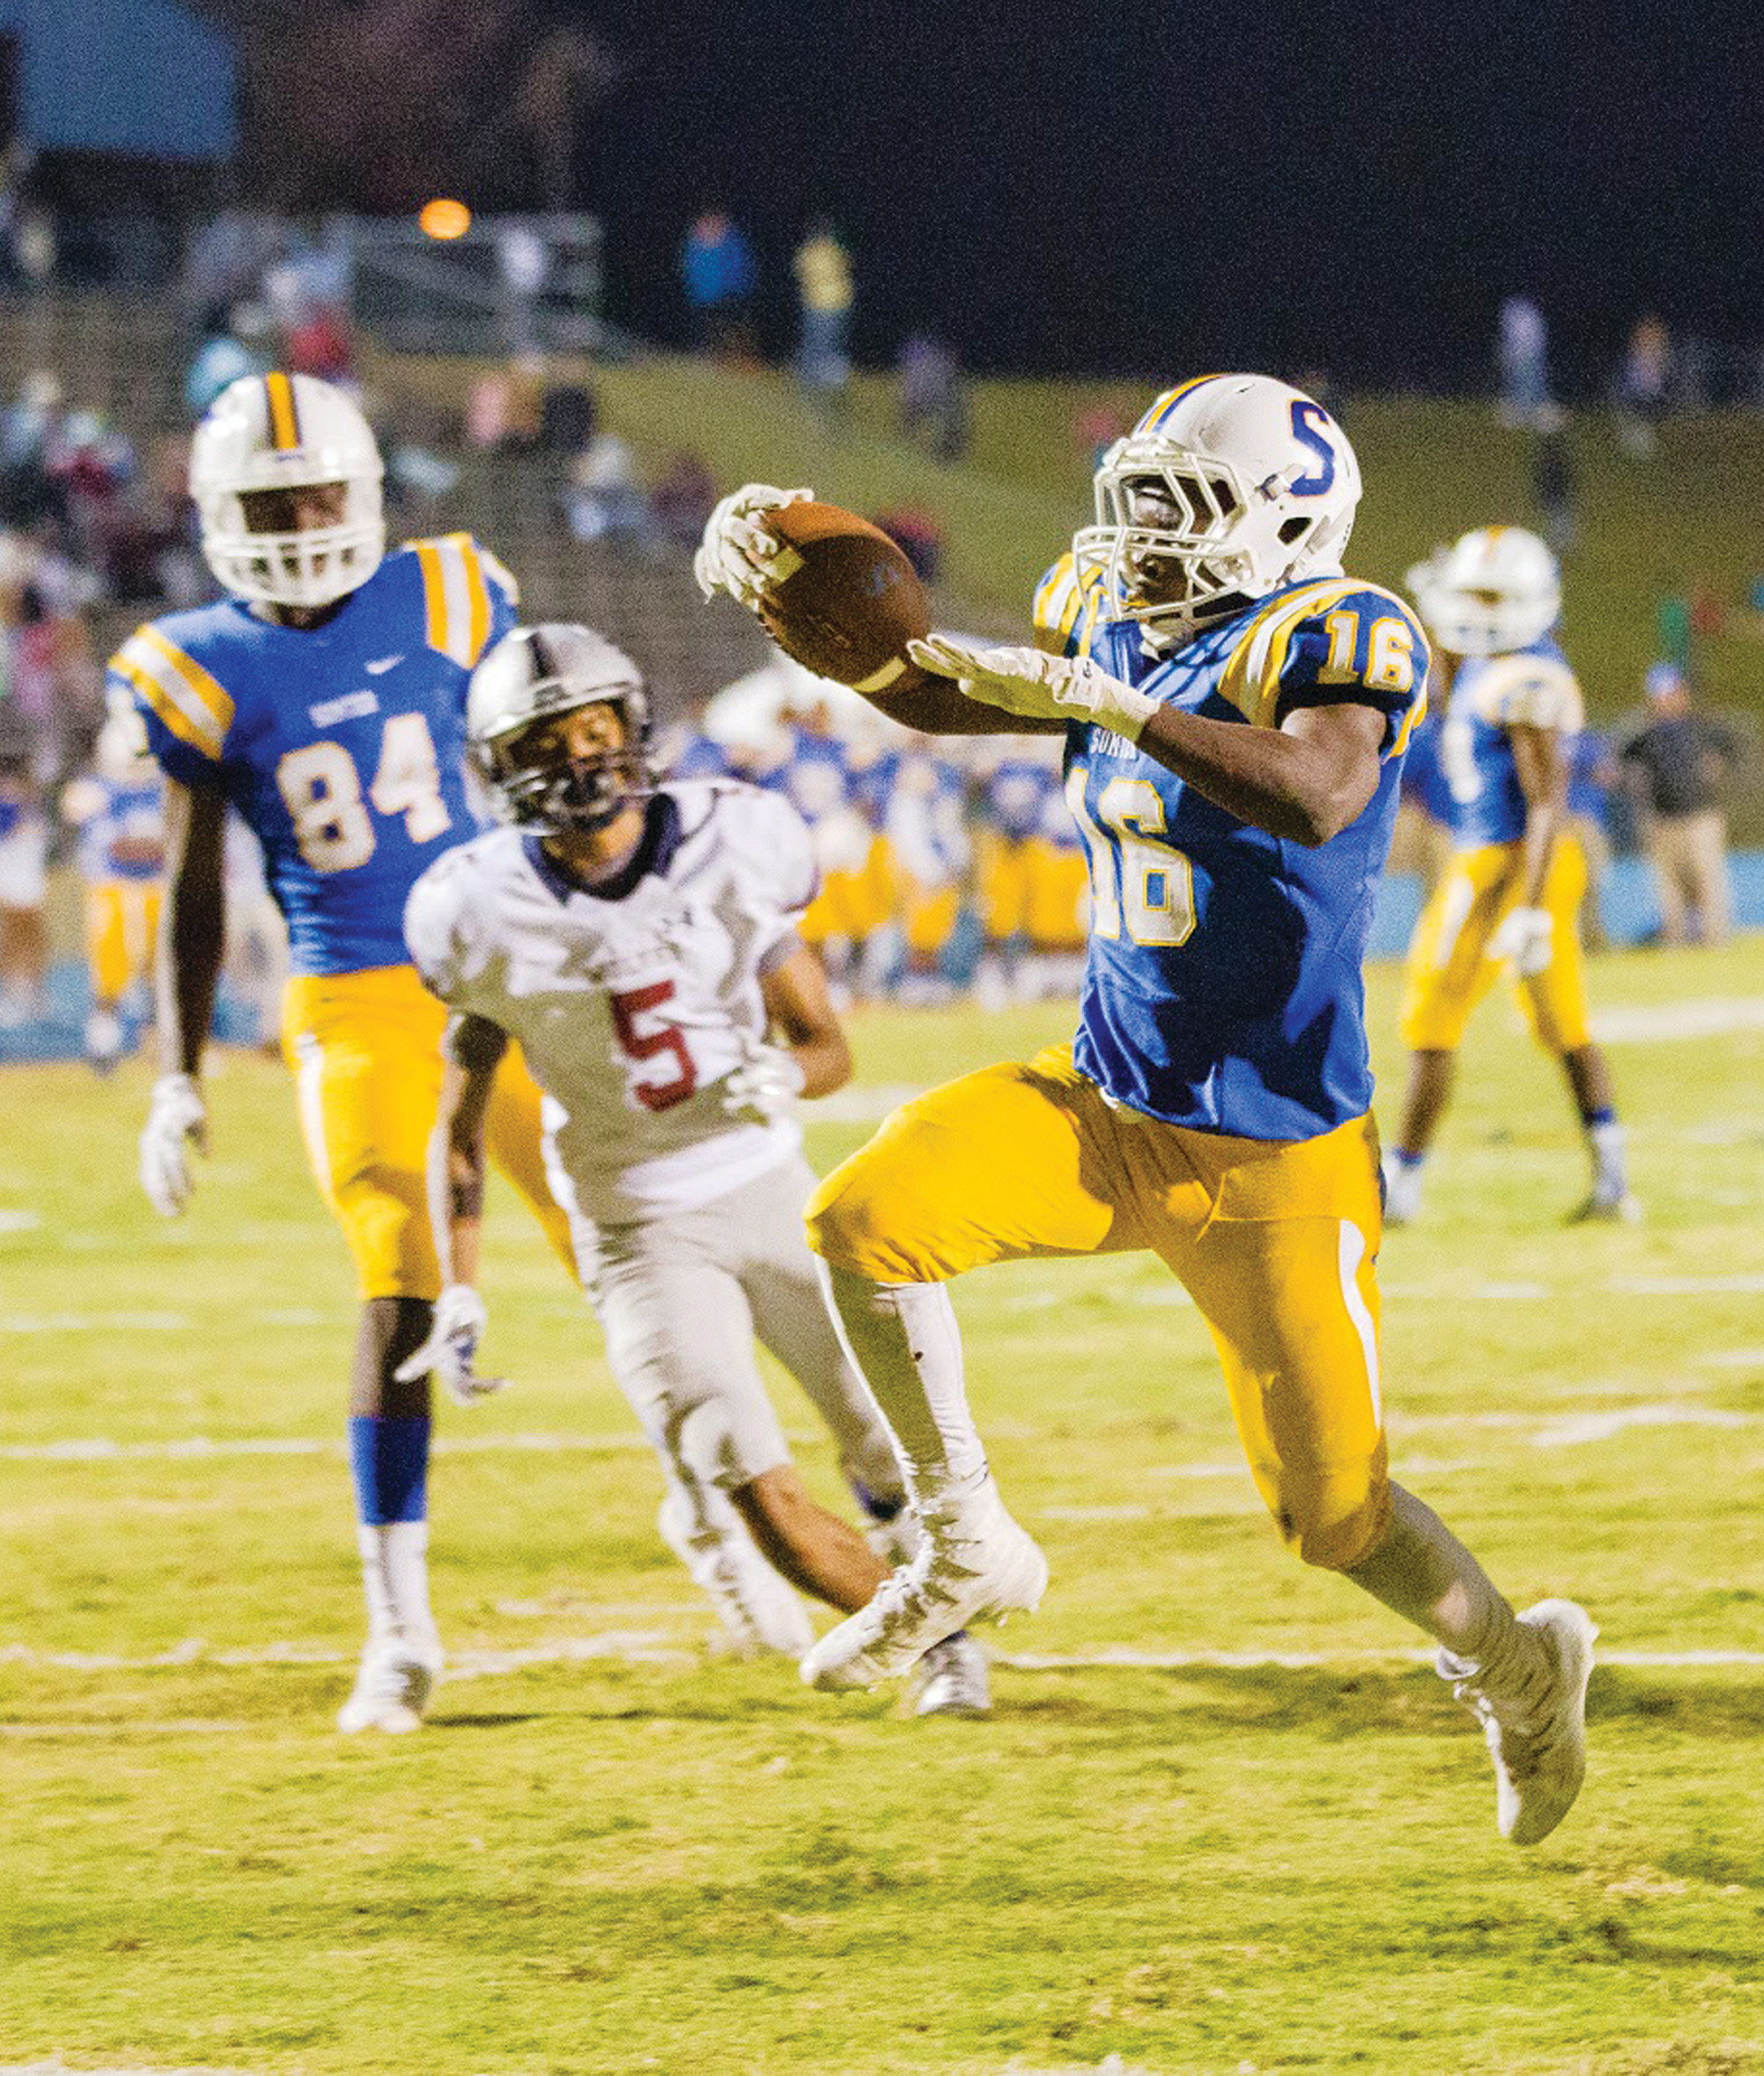 Sumter running back Jonathan Henry (16) scores a touchdown during the Gamecocks' 35-7 victory over White Knoll in the opening round of the 5A state playoffs on Friday at Memorial Stadium. Henry rushed for 203 yards and two touchdowns.